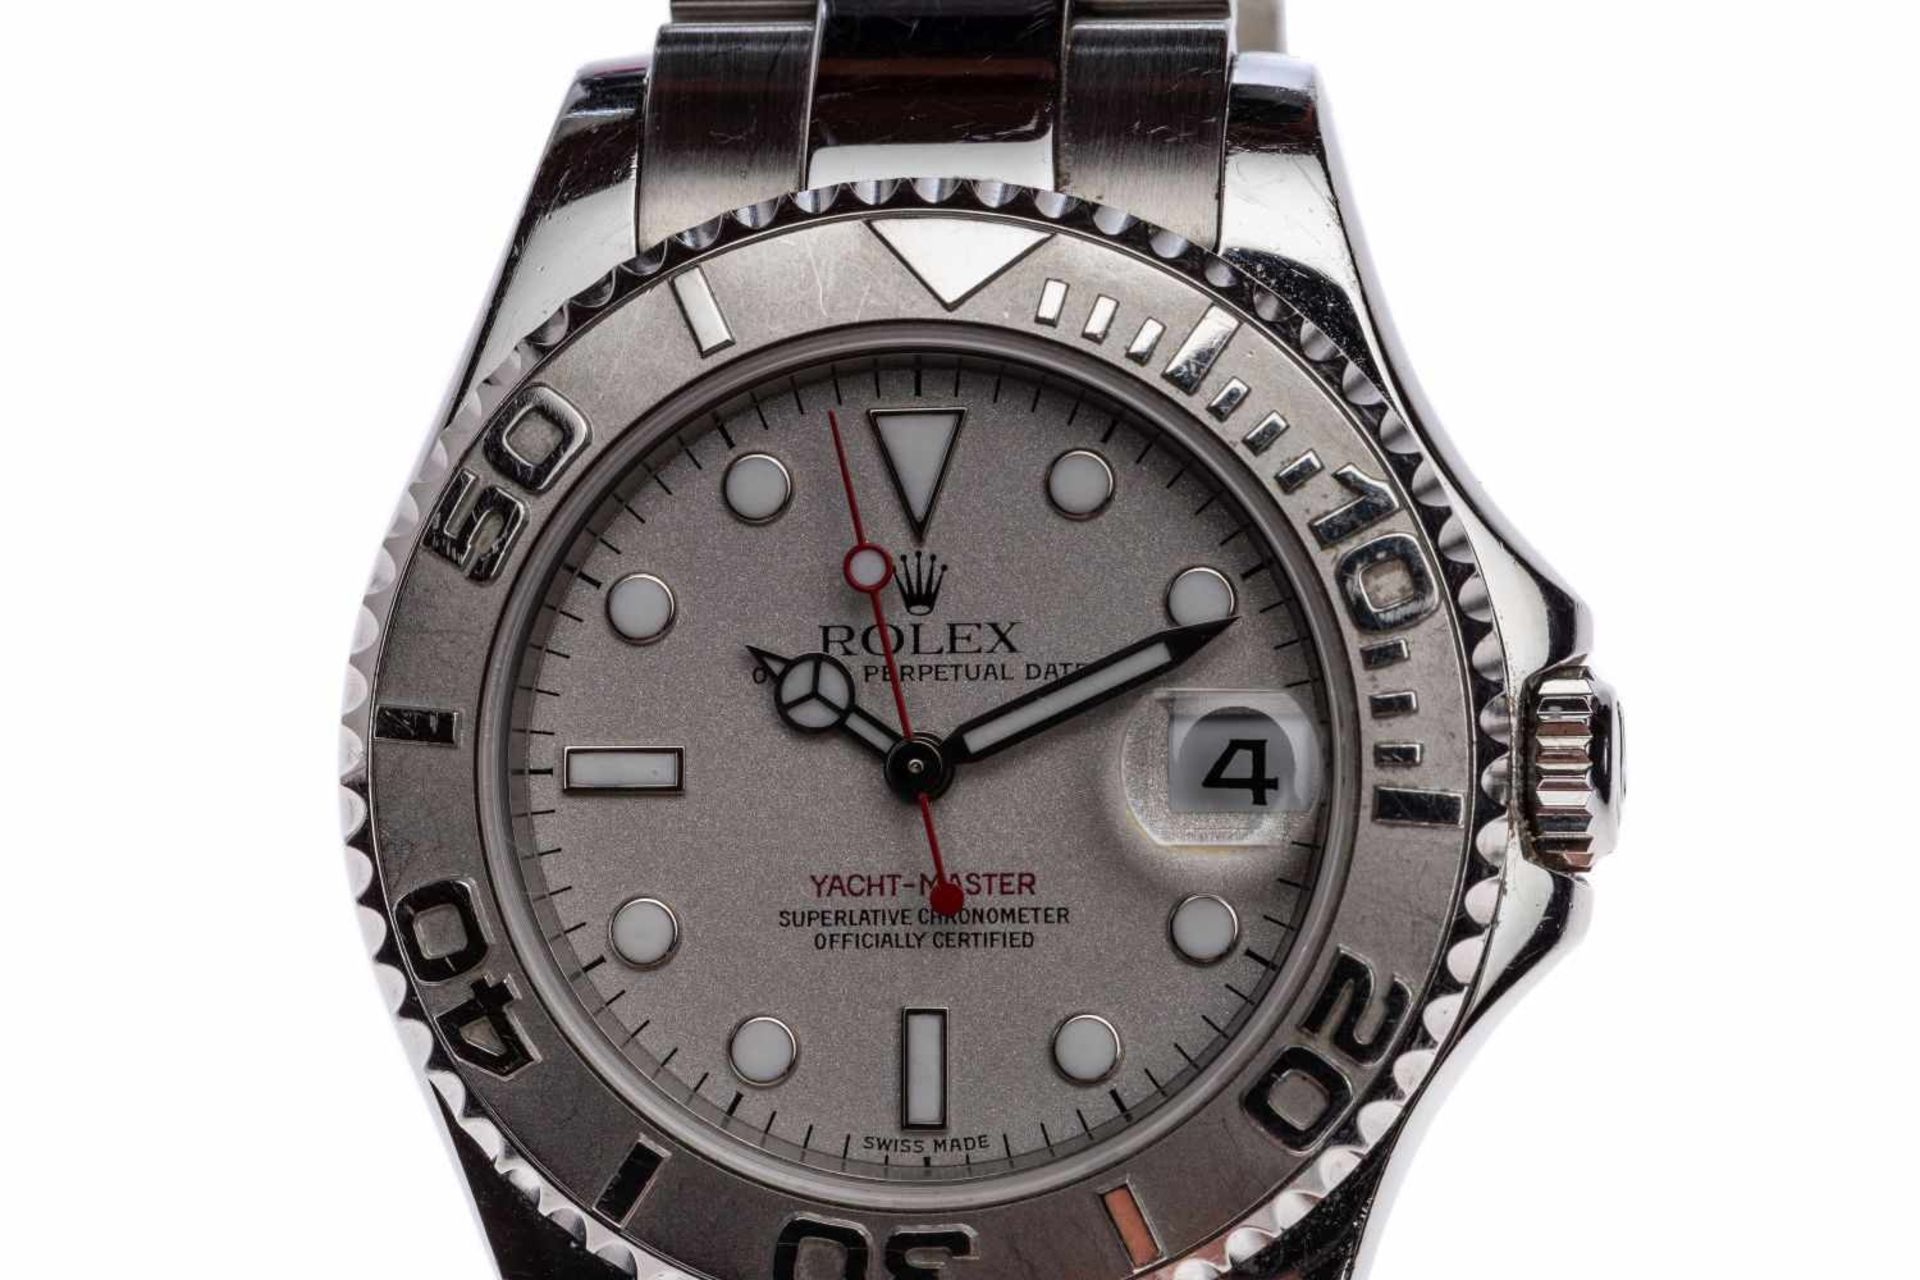 Los 32 - Rolex Yacht Master MediumSteel / Platinum Yacht Master Reference 168622, automatic movement, case